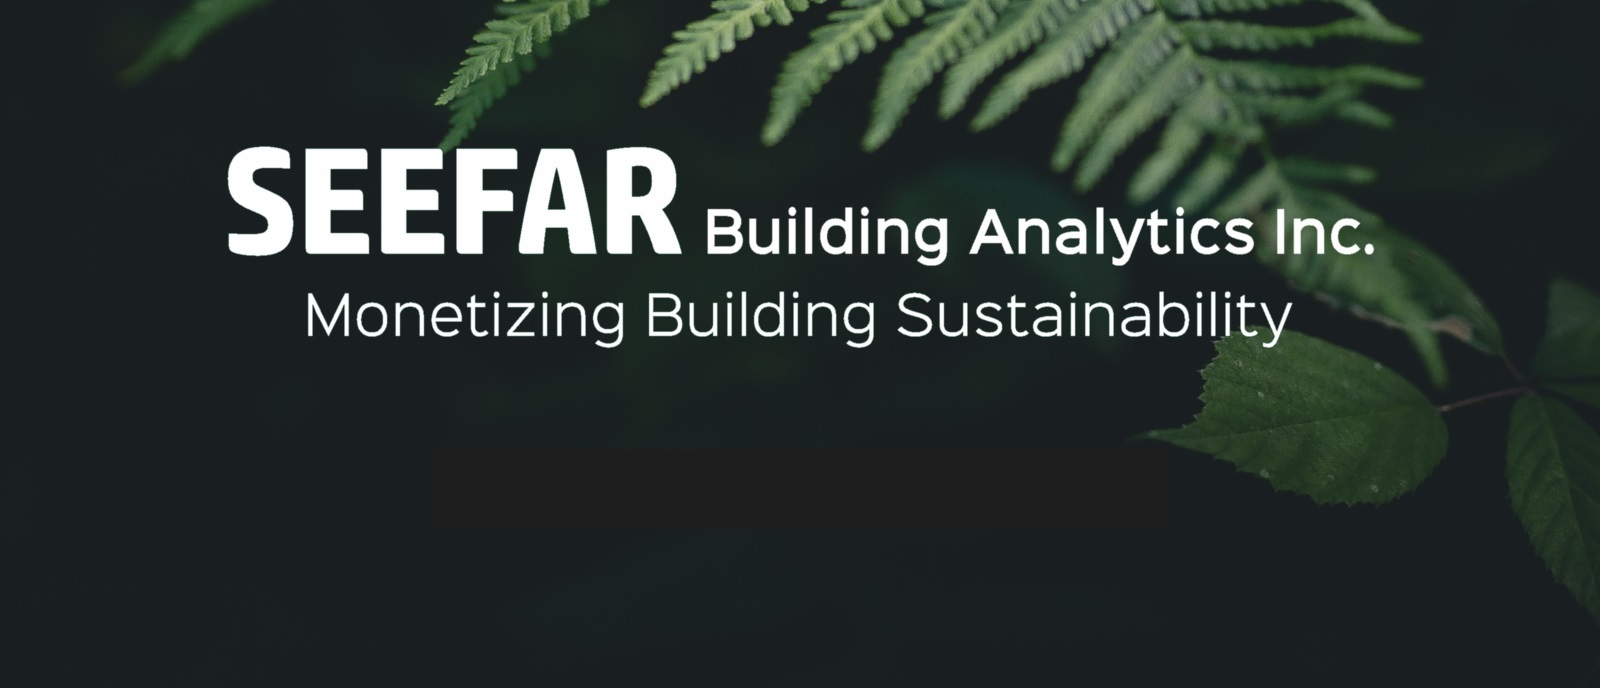 SEEFAR Building Analytics Inc.